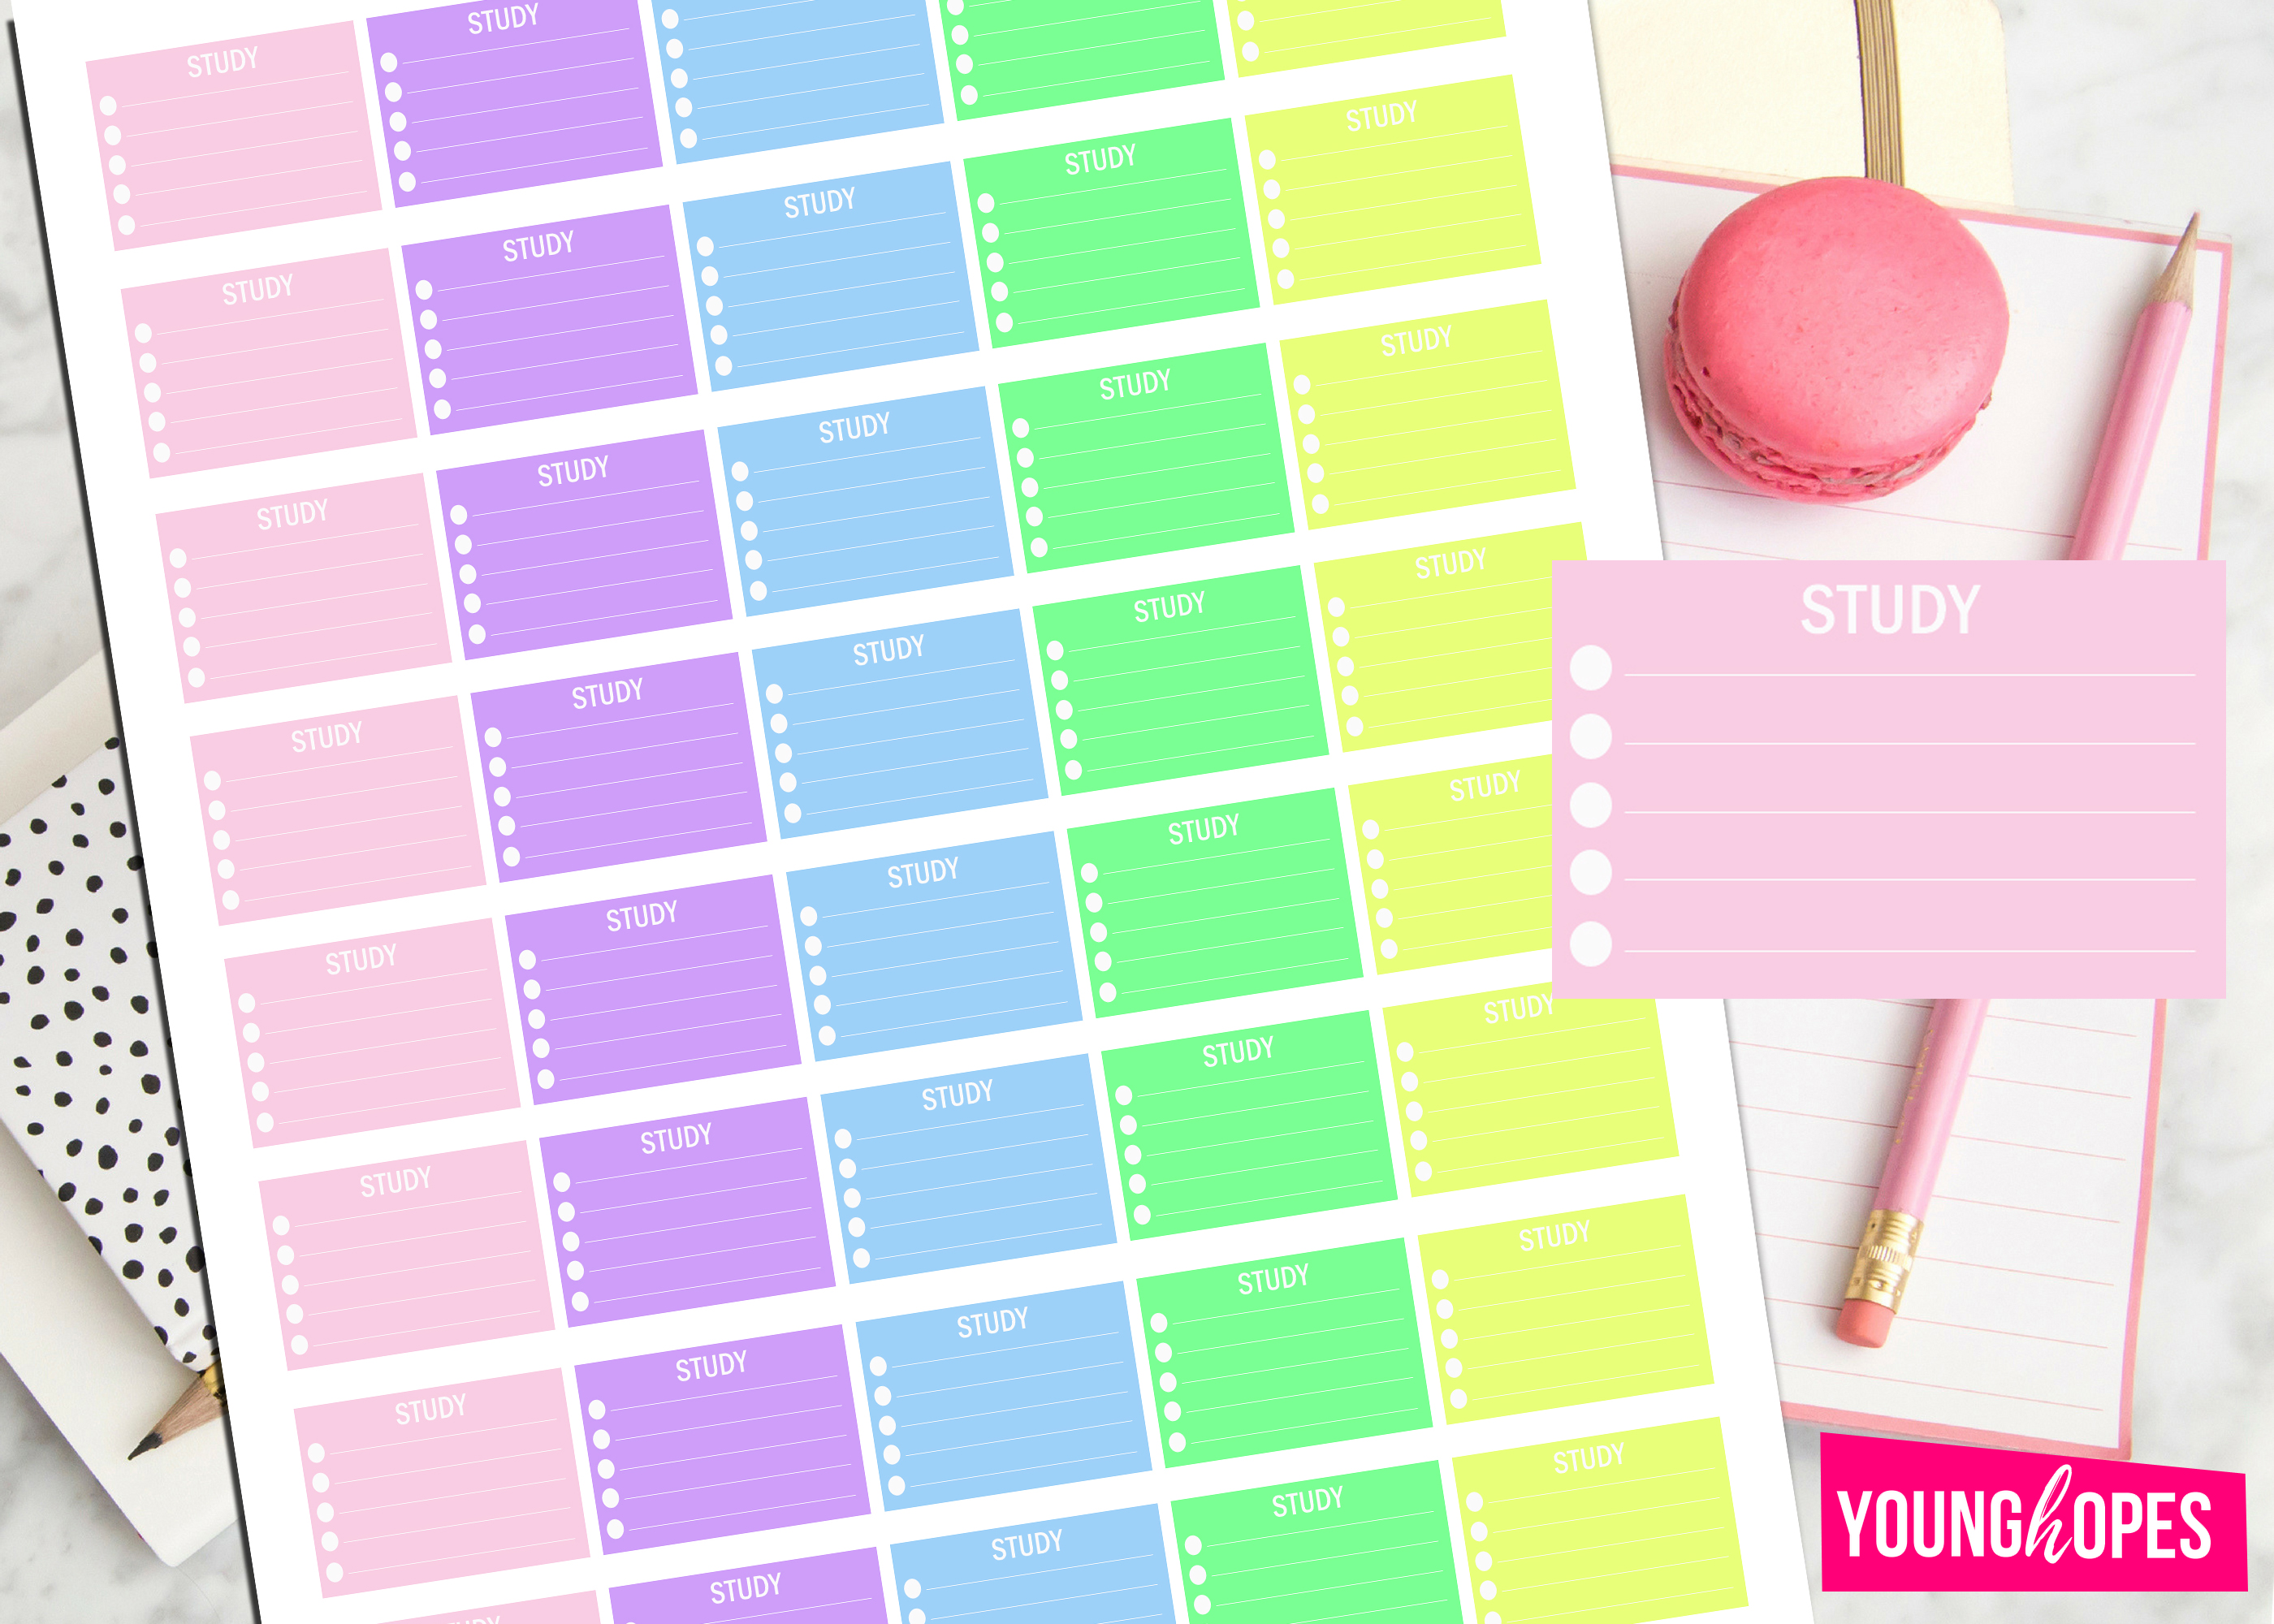 Study Half Box Planner Stickers-Student Planner Stickers example image 2